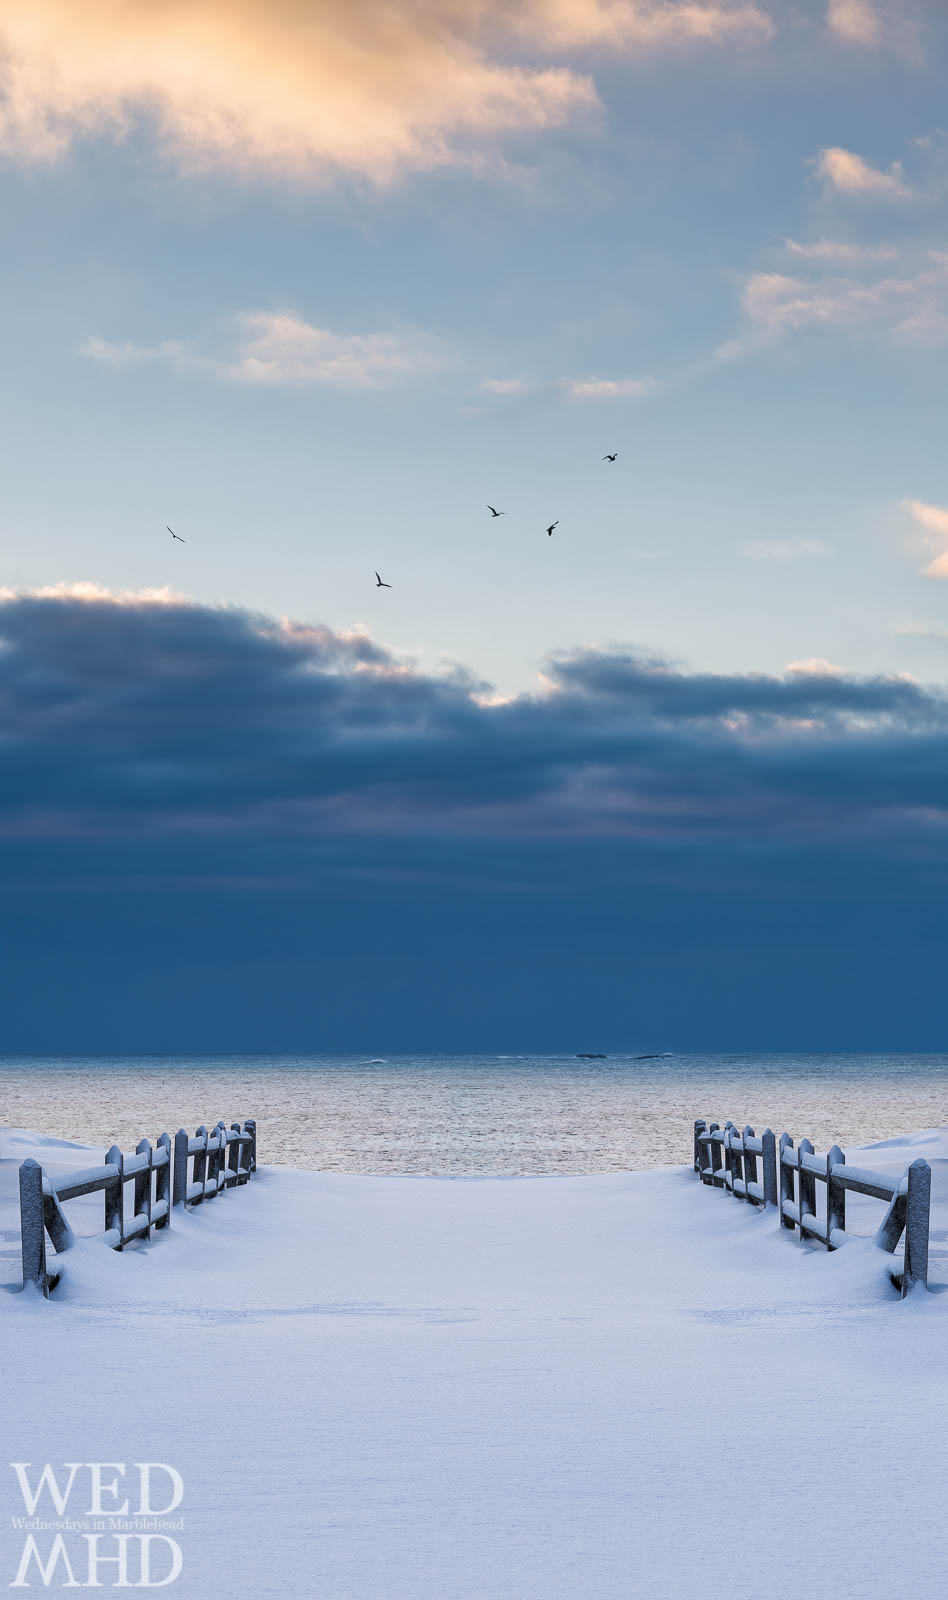 Fences in the Snow and the Ocean Beyond